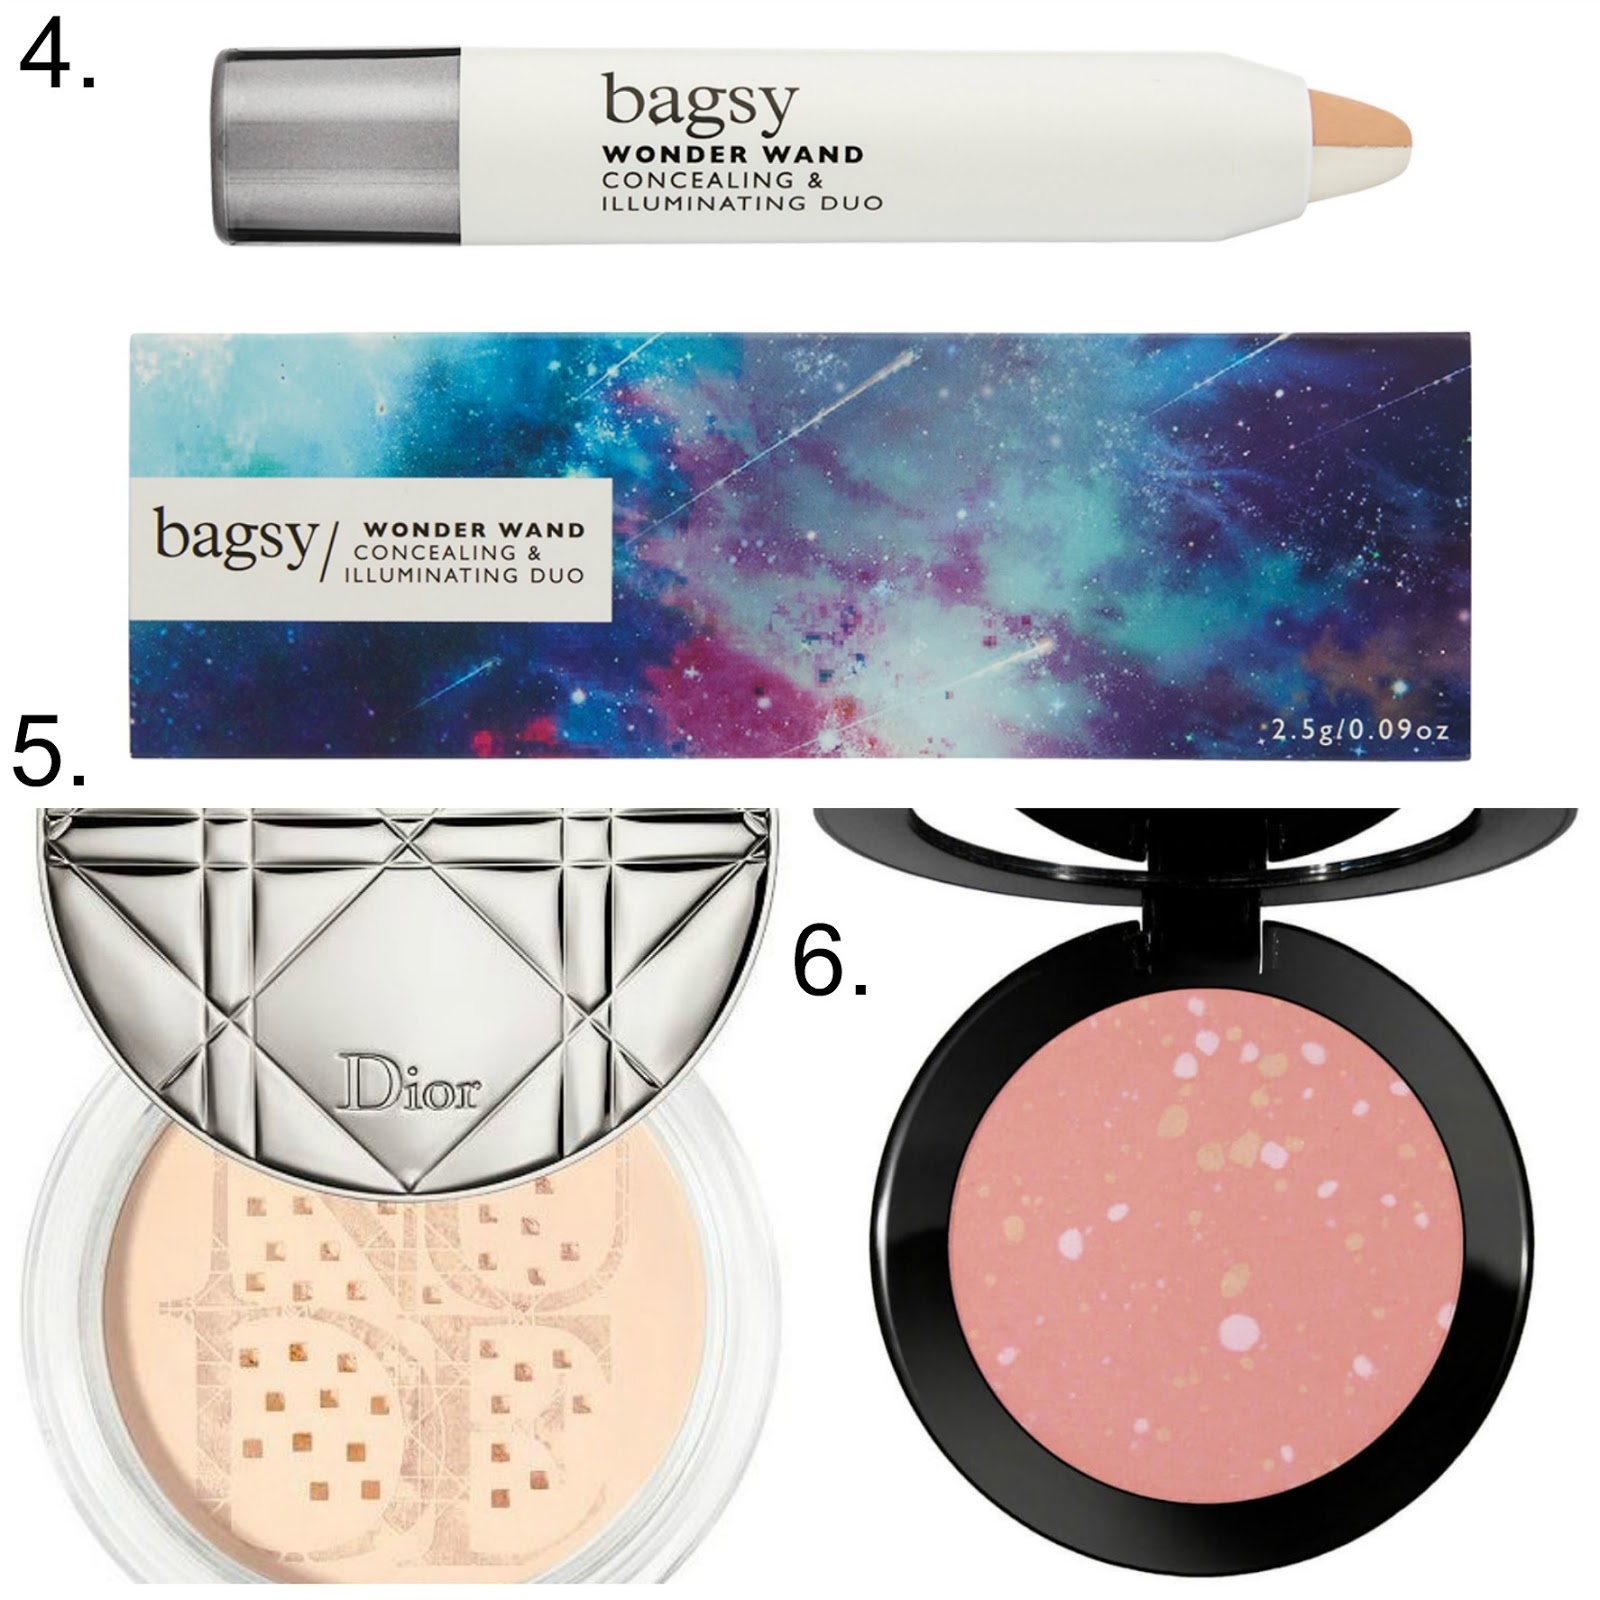 spring makeup wishlist bagsy wonderwand concealing and illuminating duo